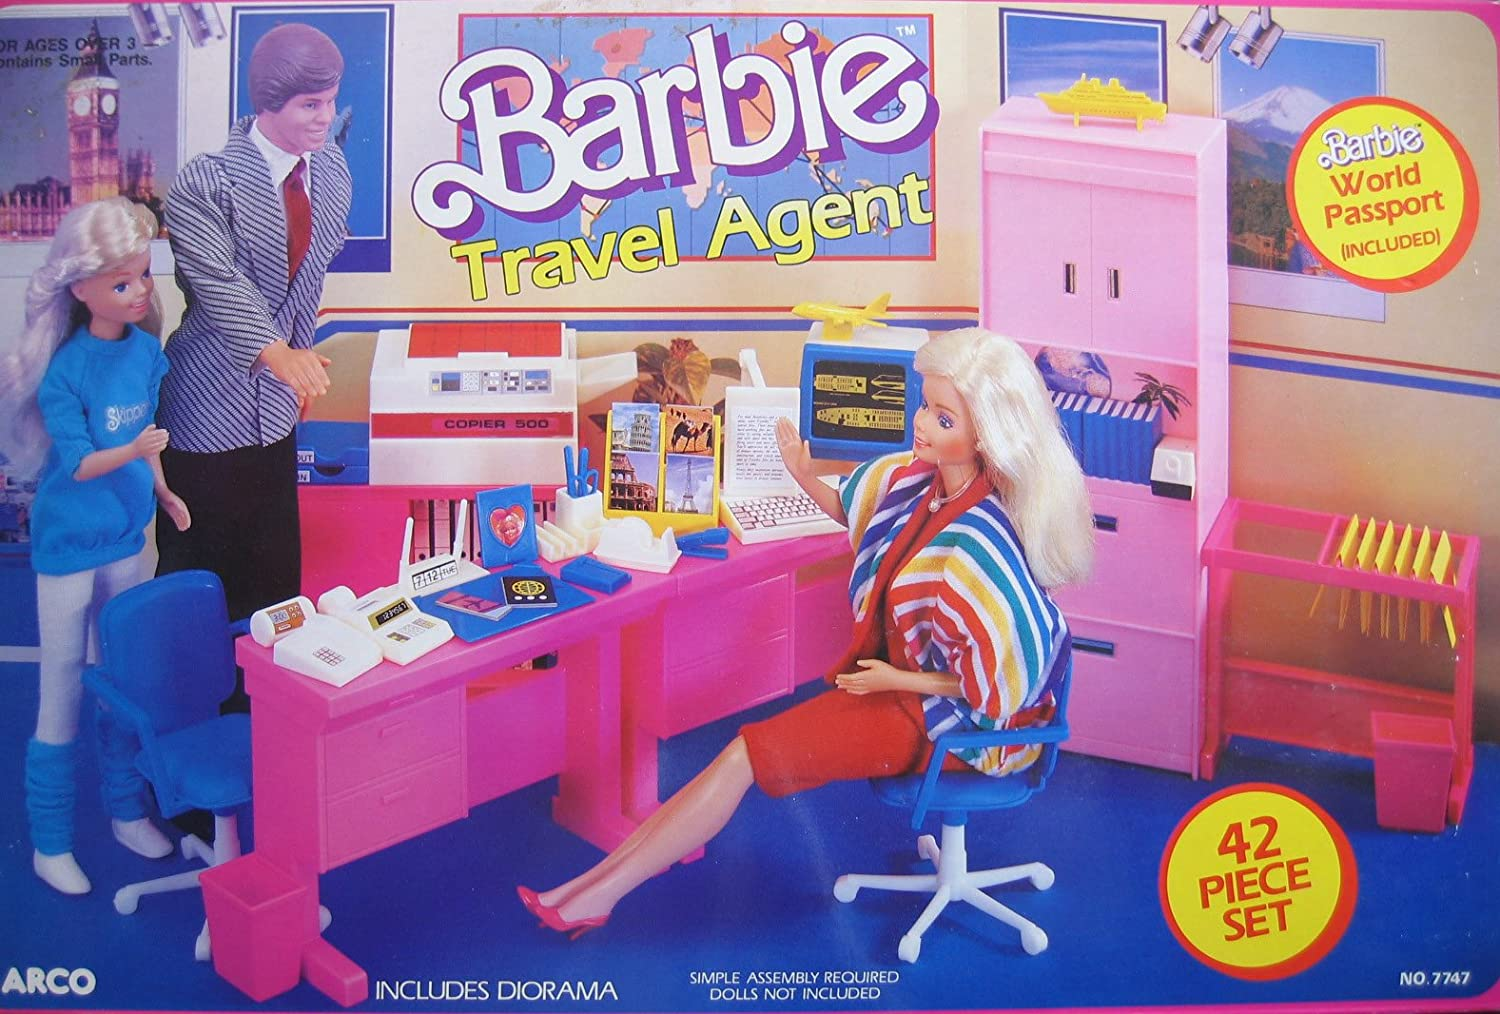 Vintage Barbie playsets like these, the Travel Agent set, as on Amazon